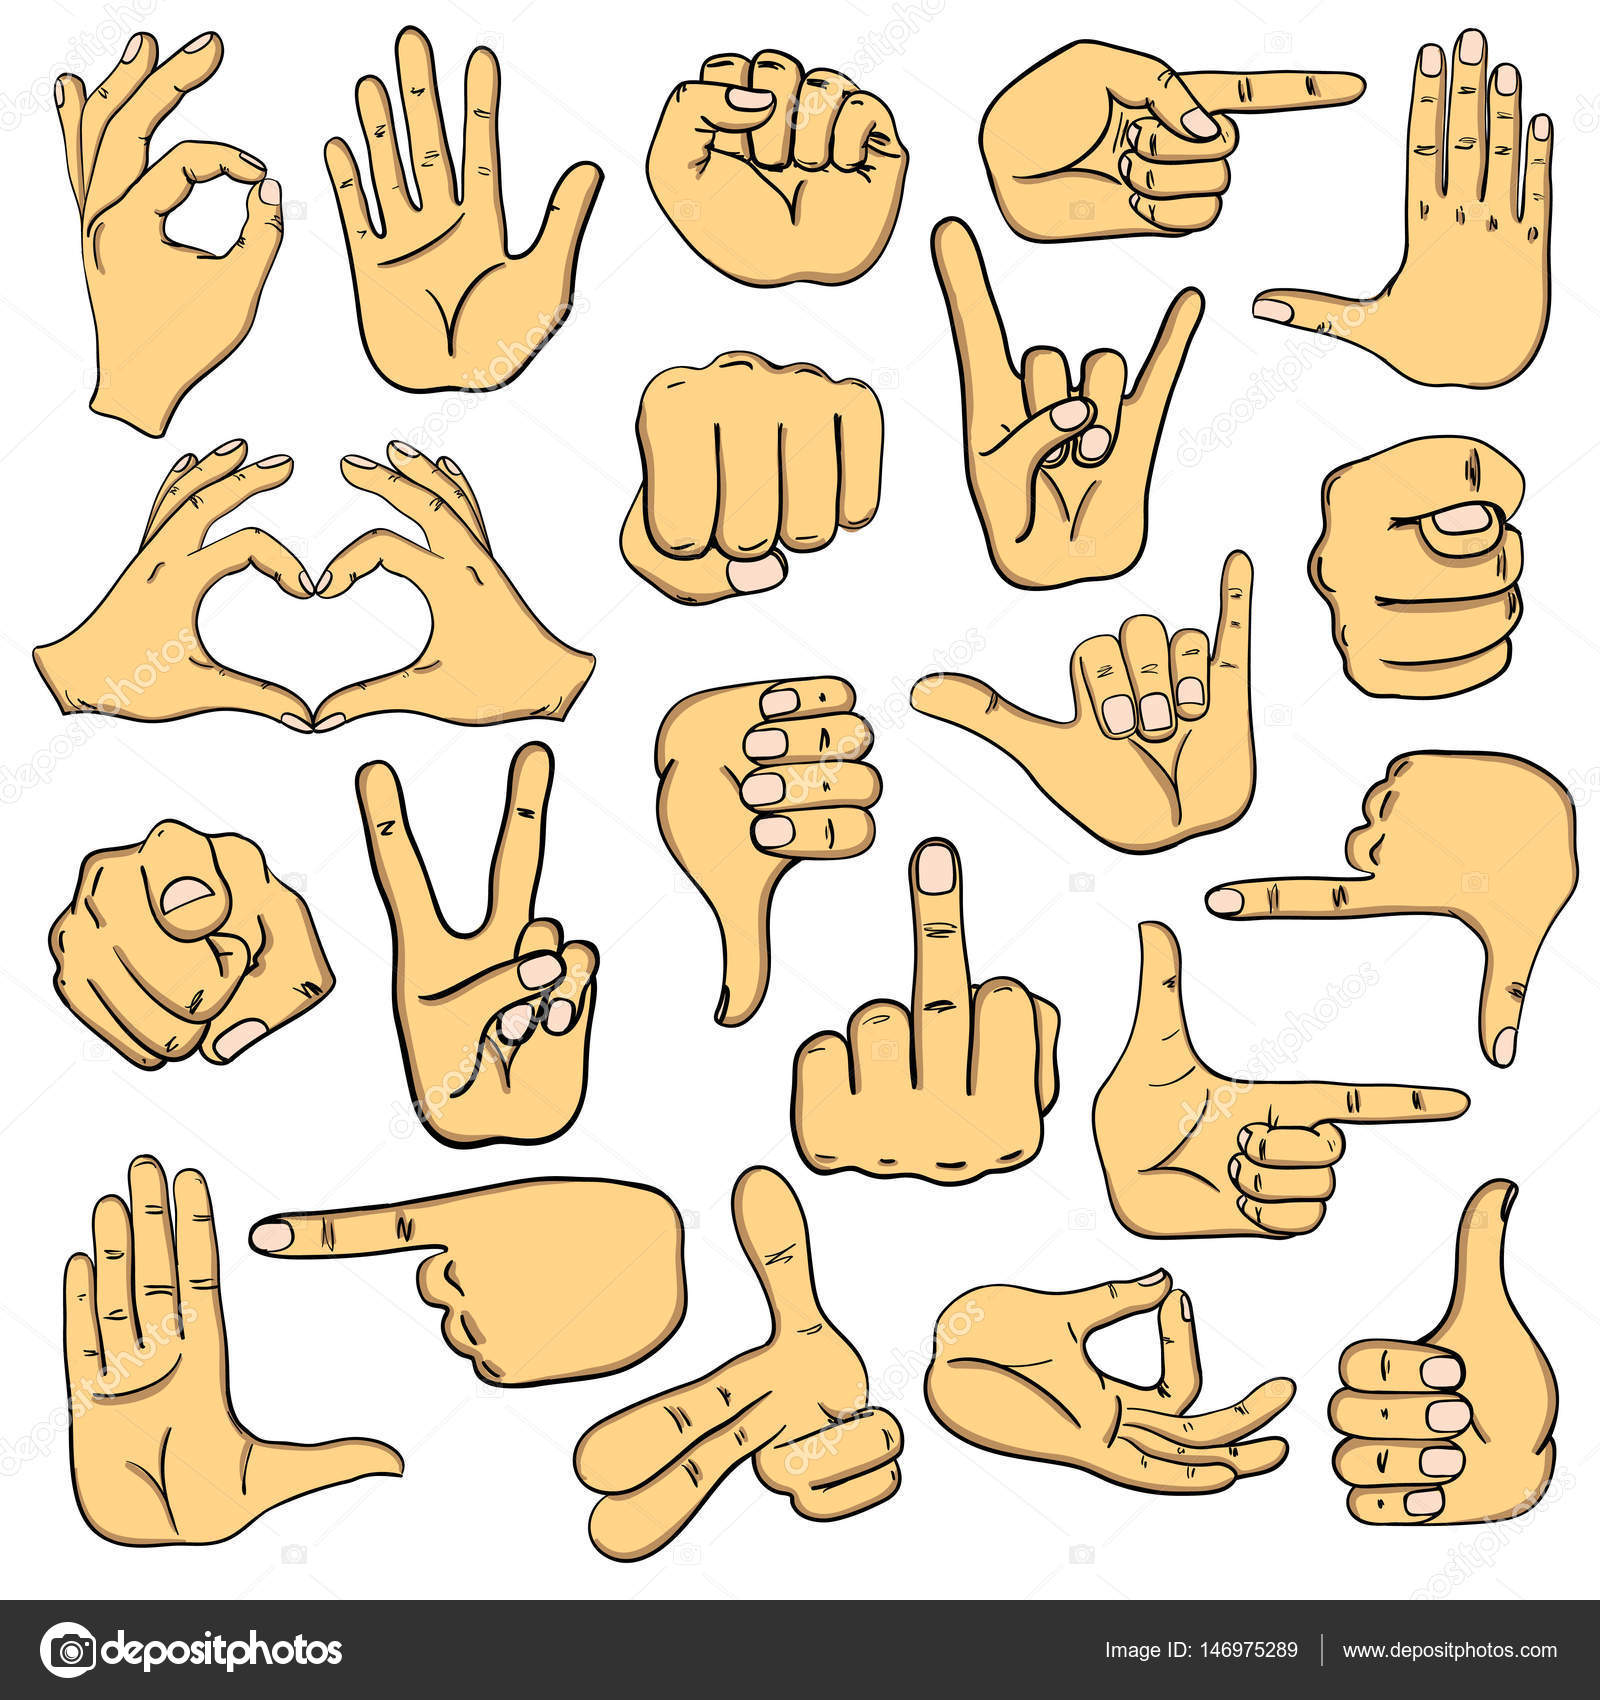 Cached Banksman hand signals pictures